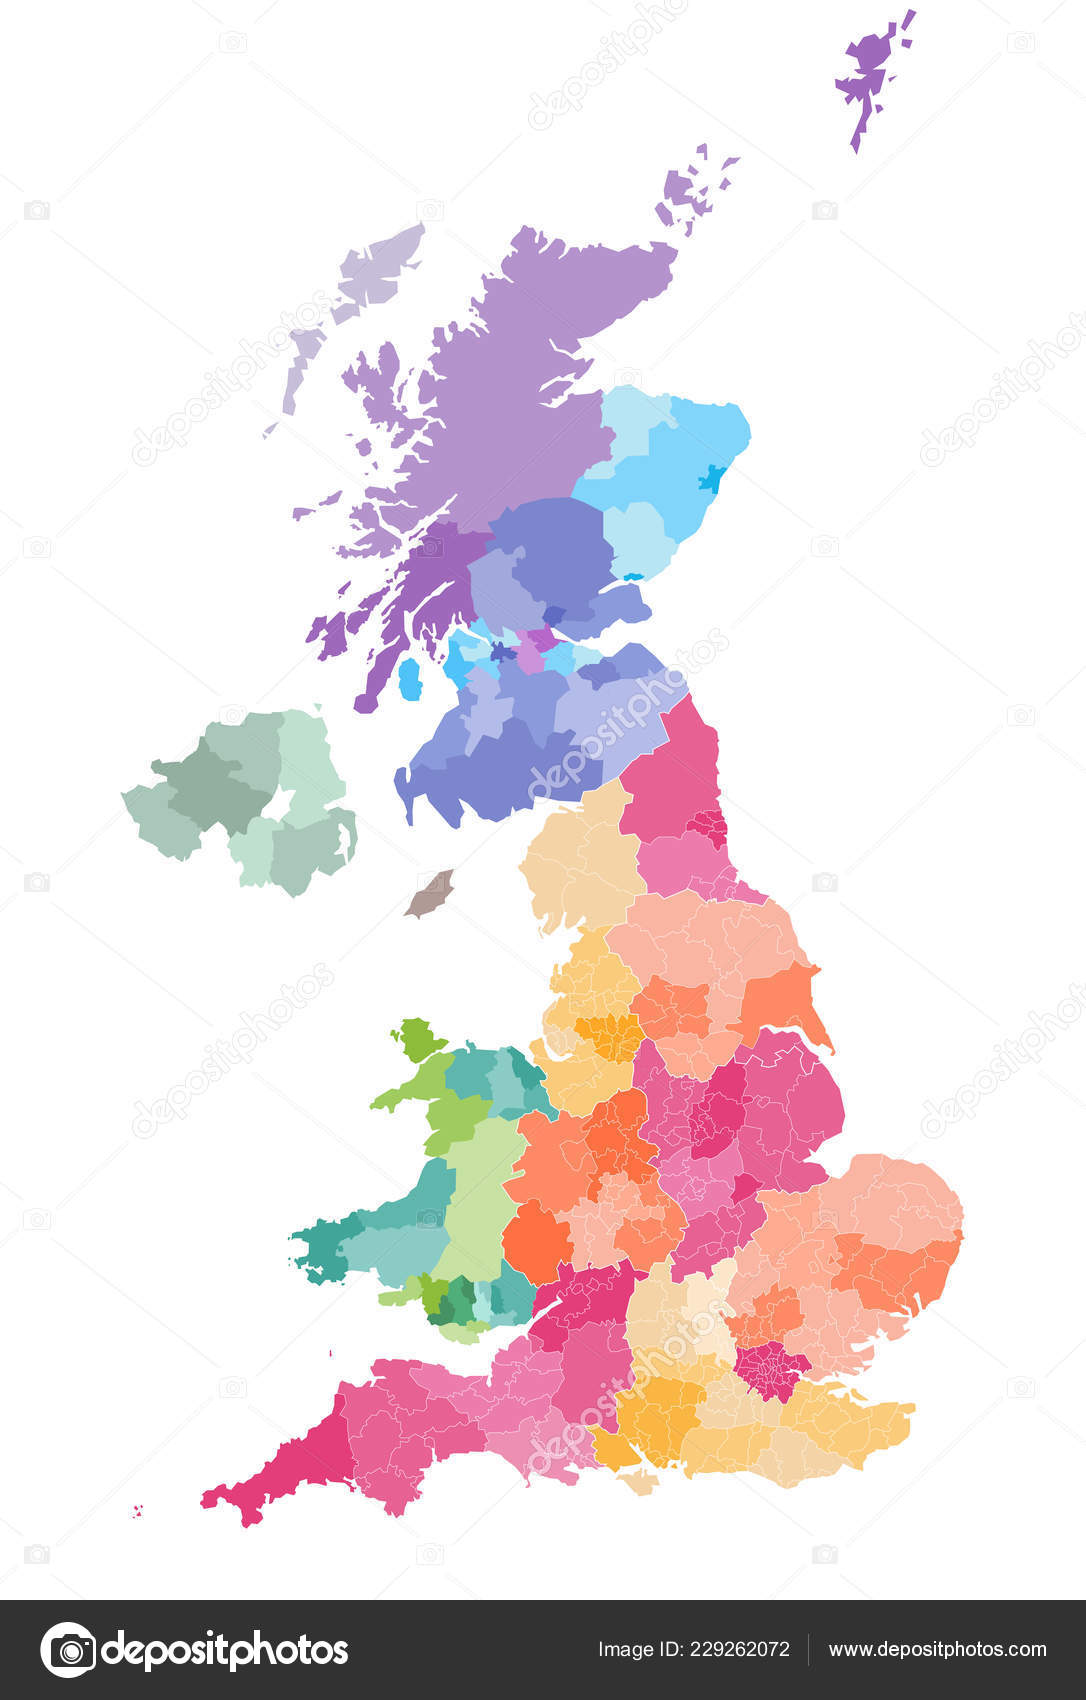 Vector Map United Kingdom Administrative Divisions Colored Countries